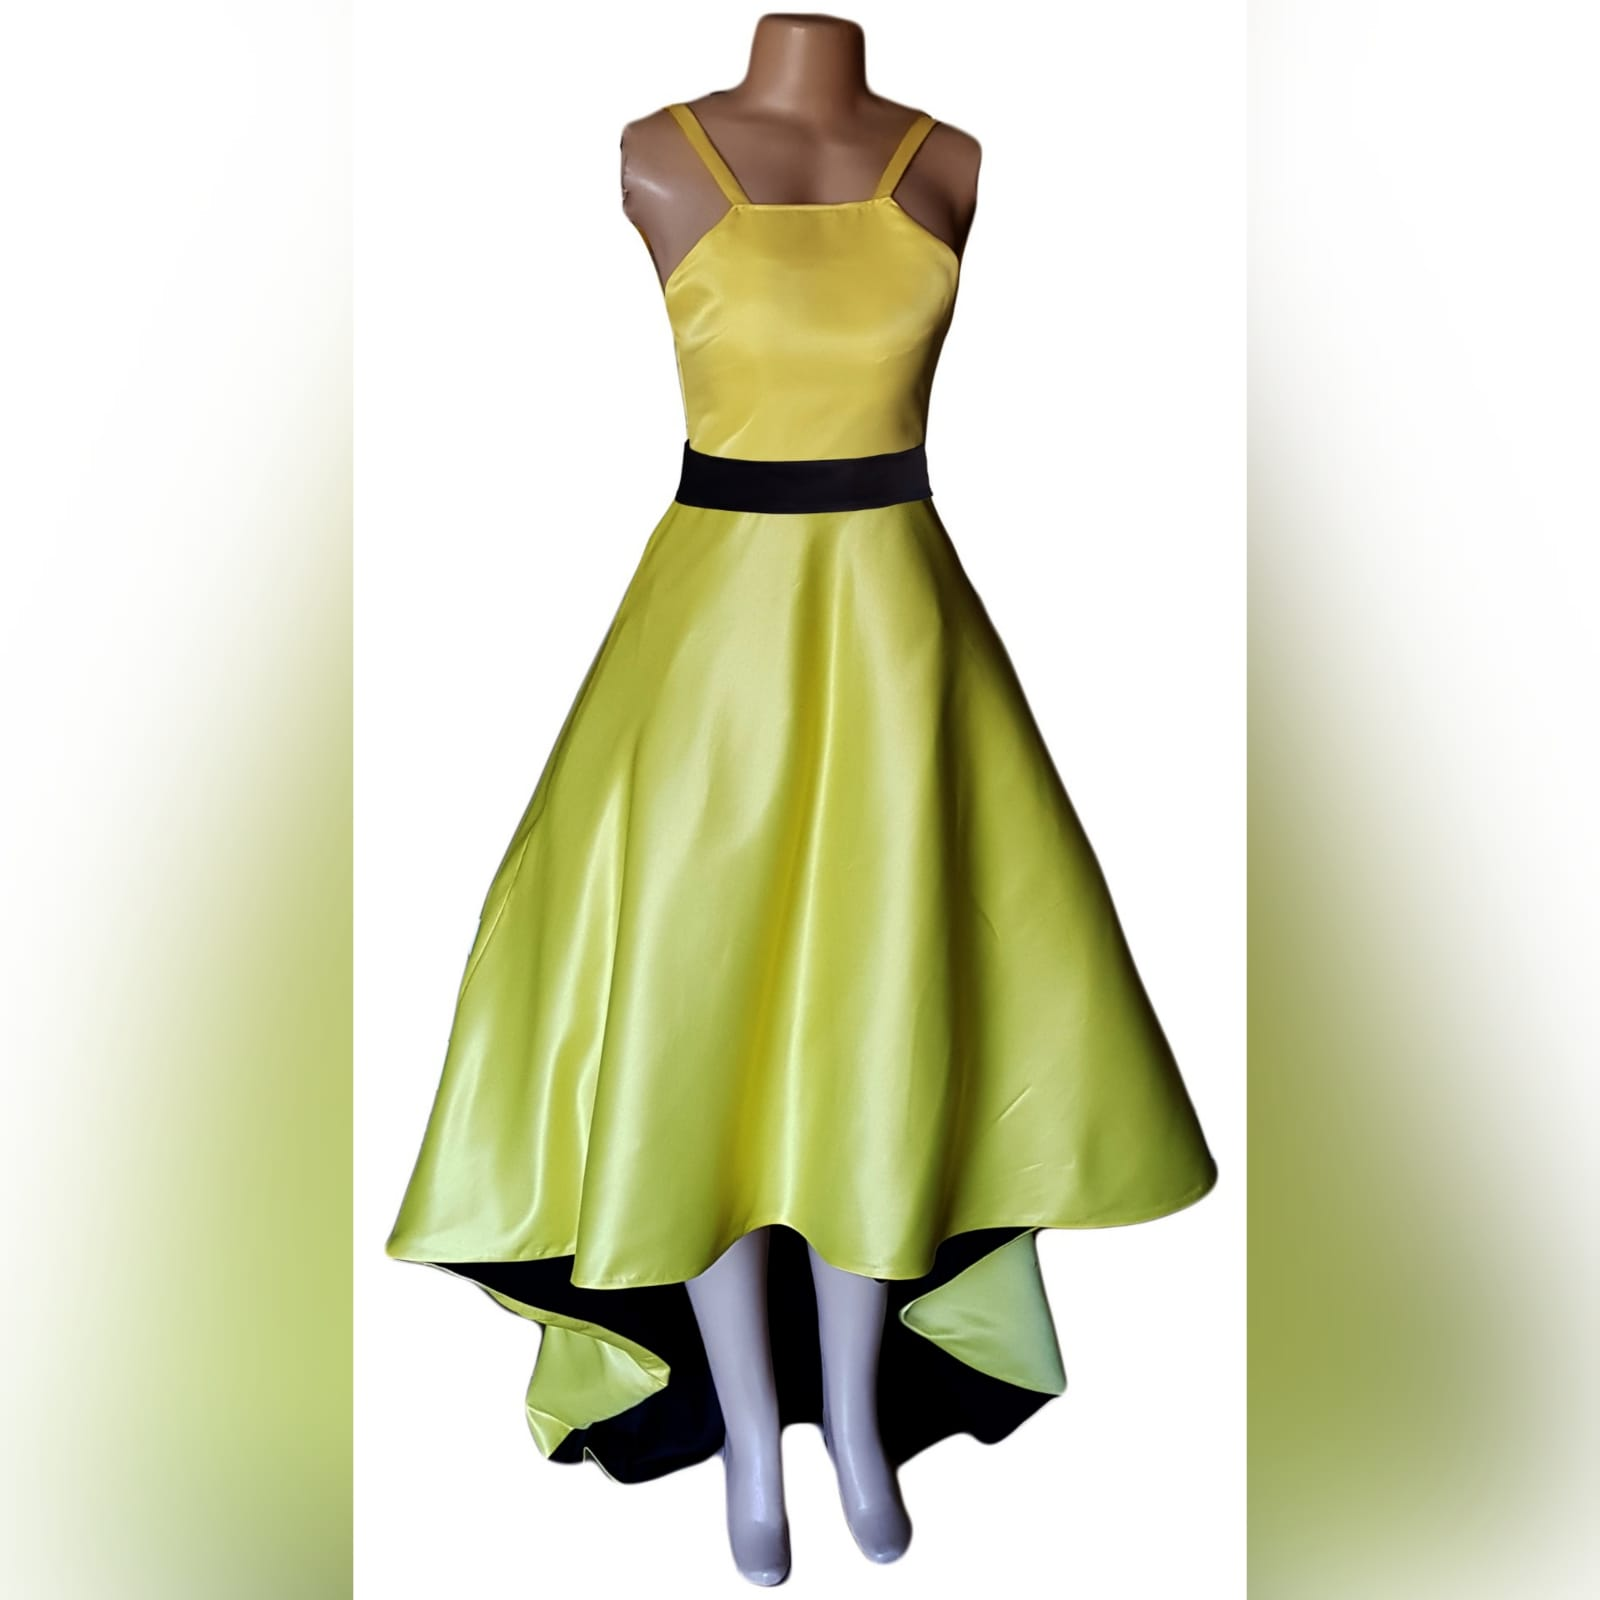 Yellow and black high low prom dress 4 yellow & black high low prom dress with an open back, pockets and a detachable black belt